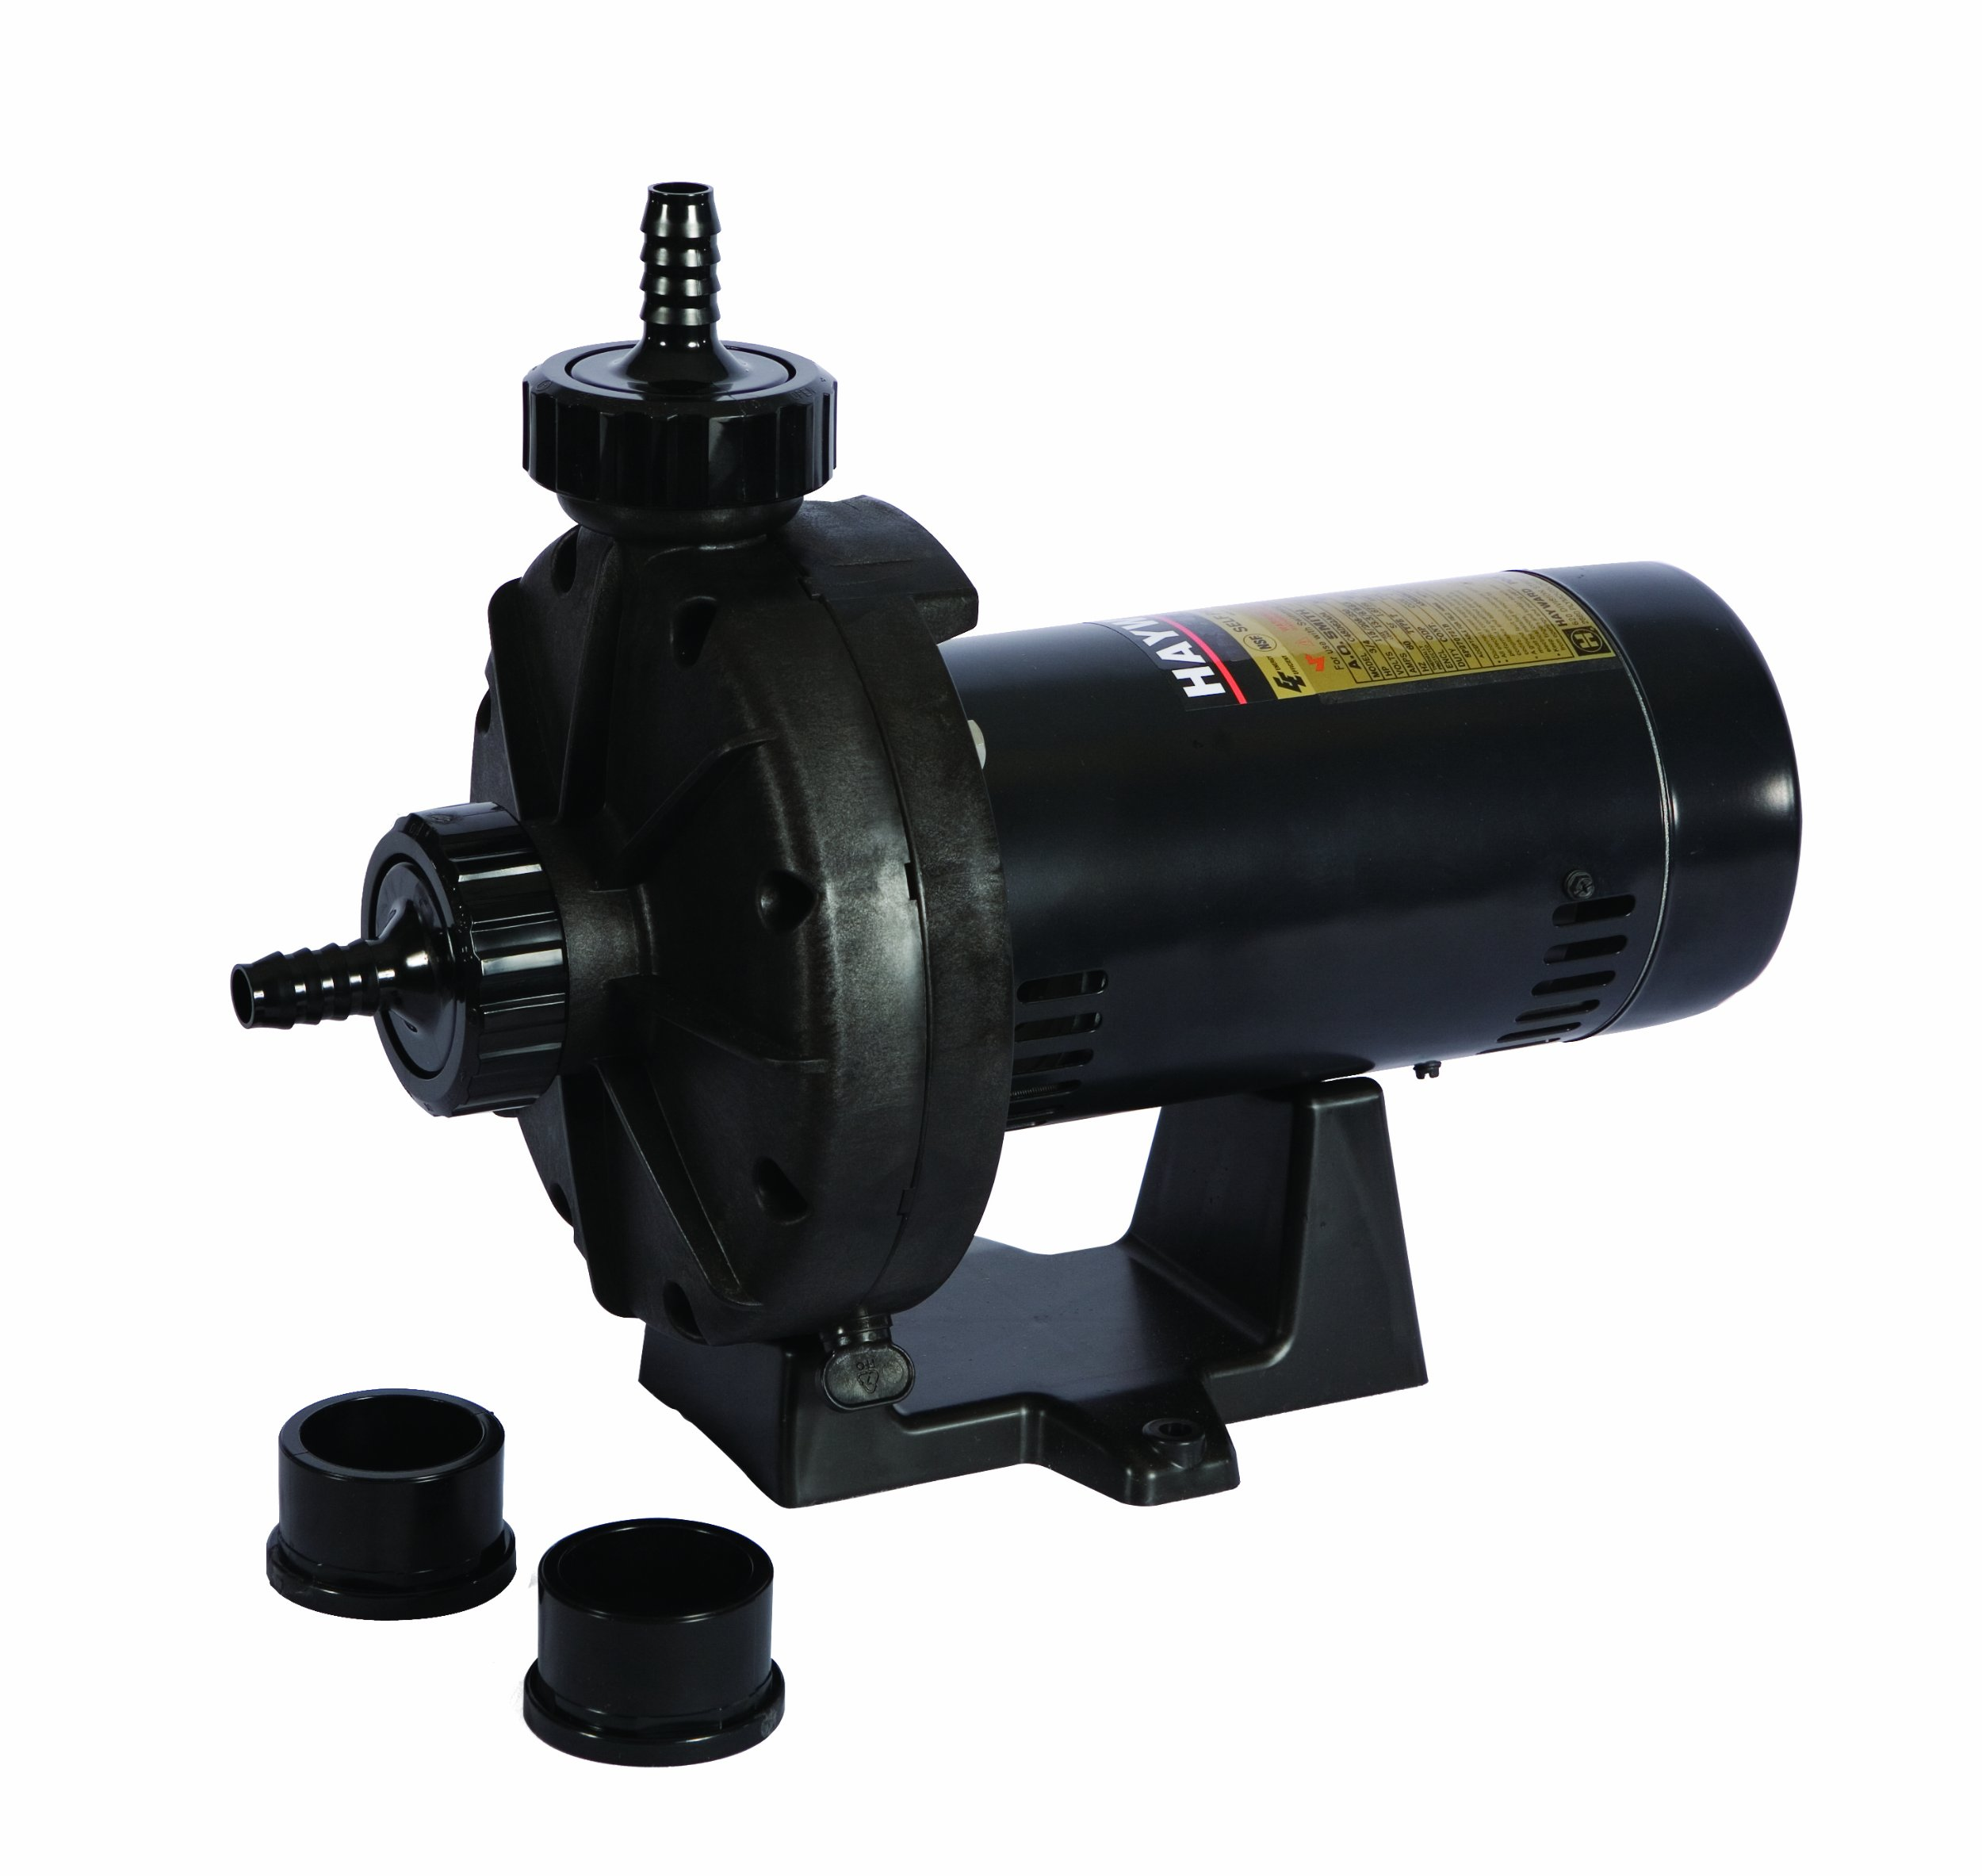 Hayward 6060 0.75 HP Booster Pump